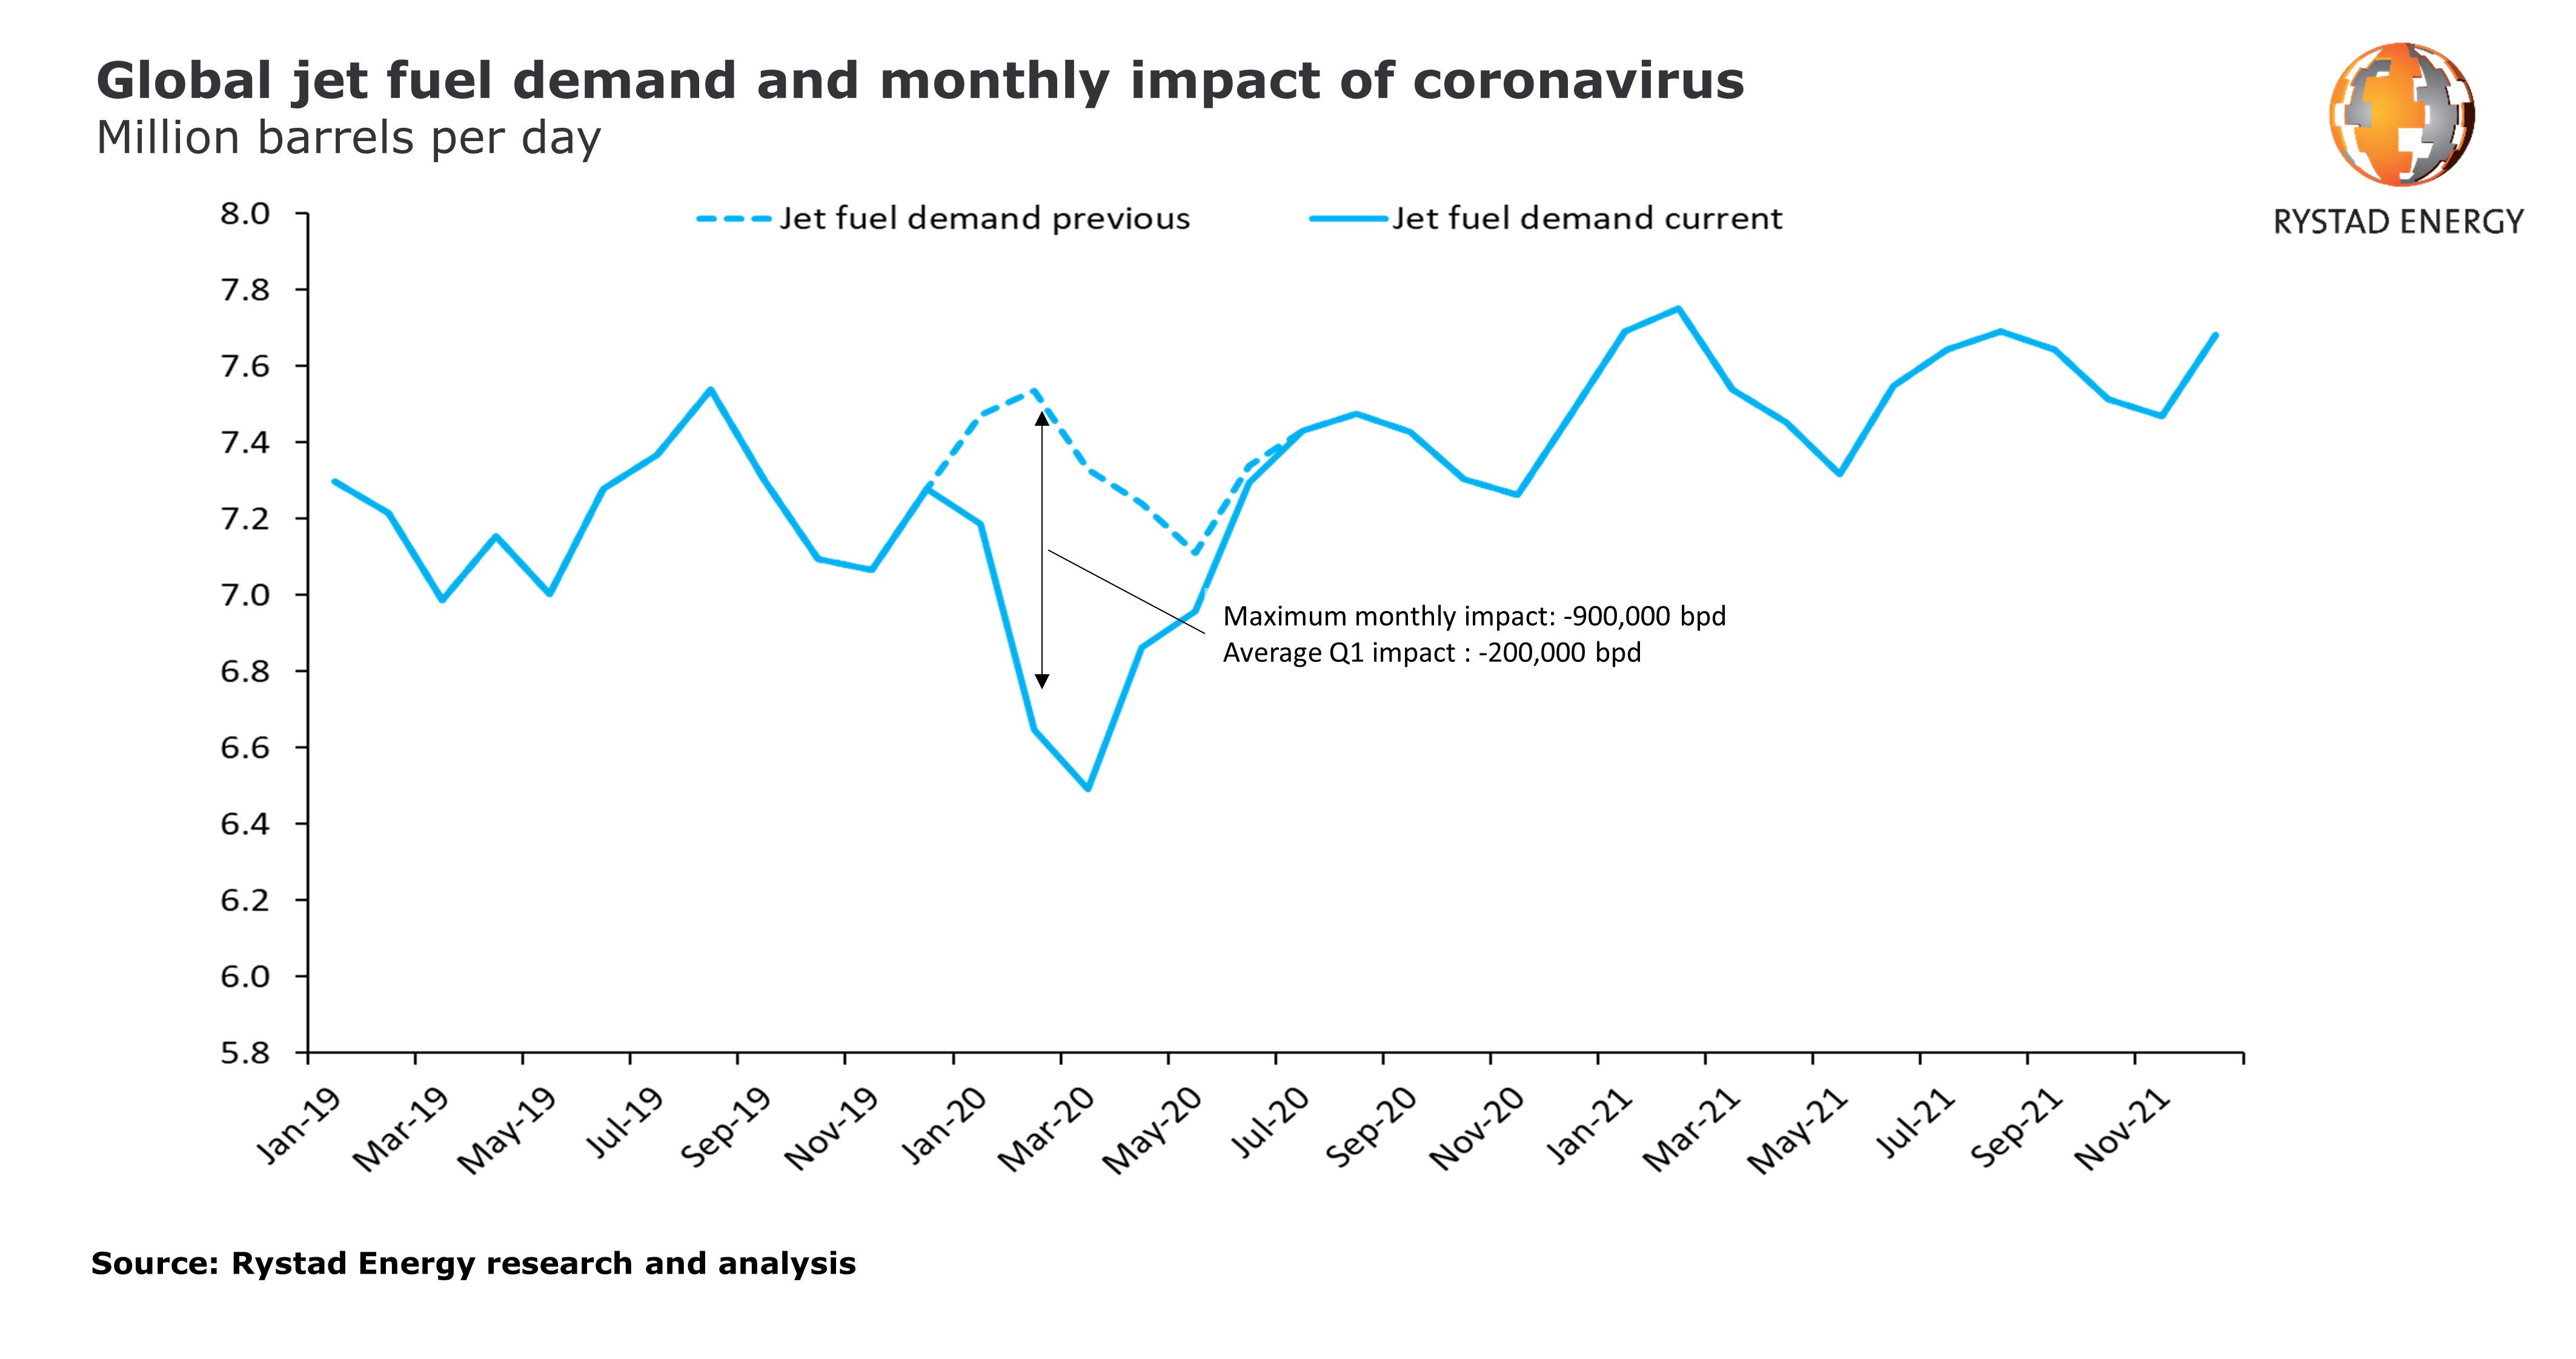 Graph showing global jet fuel demand and monthly impact of coronavirus in million barrels per day from Januar 2019 – November 2021